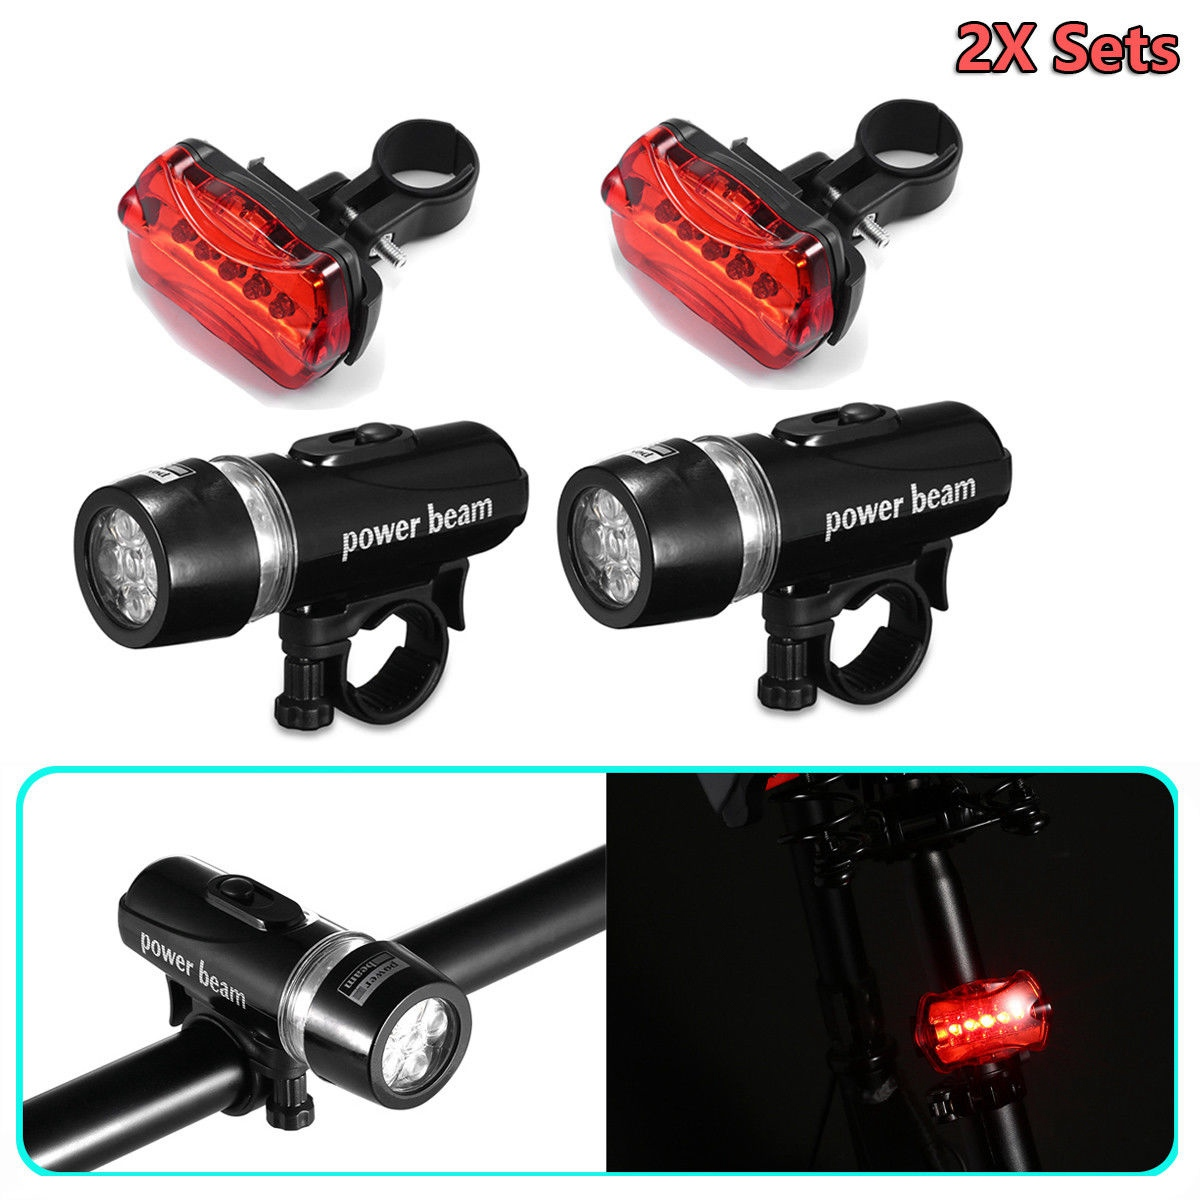 2x Sets LED Lamp Bike Bicycle MTB Front Head Light + Rear Safety Flashlight Kit